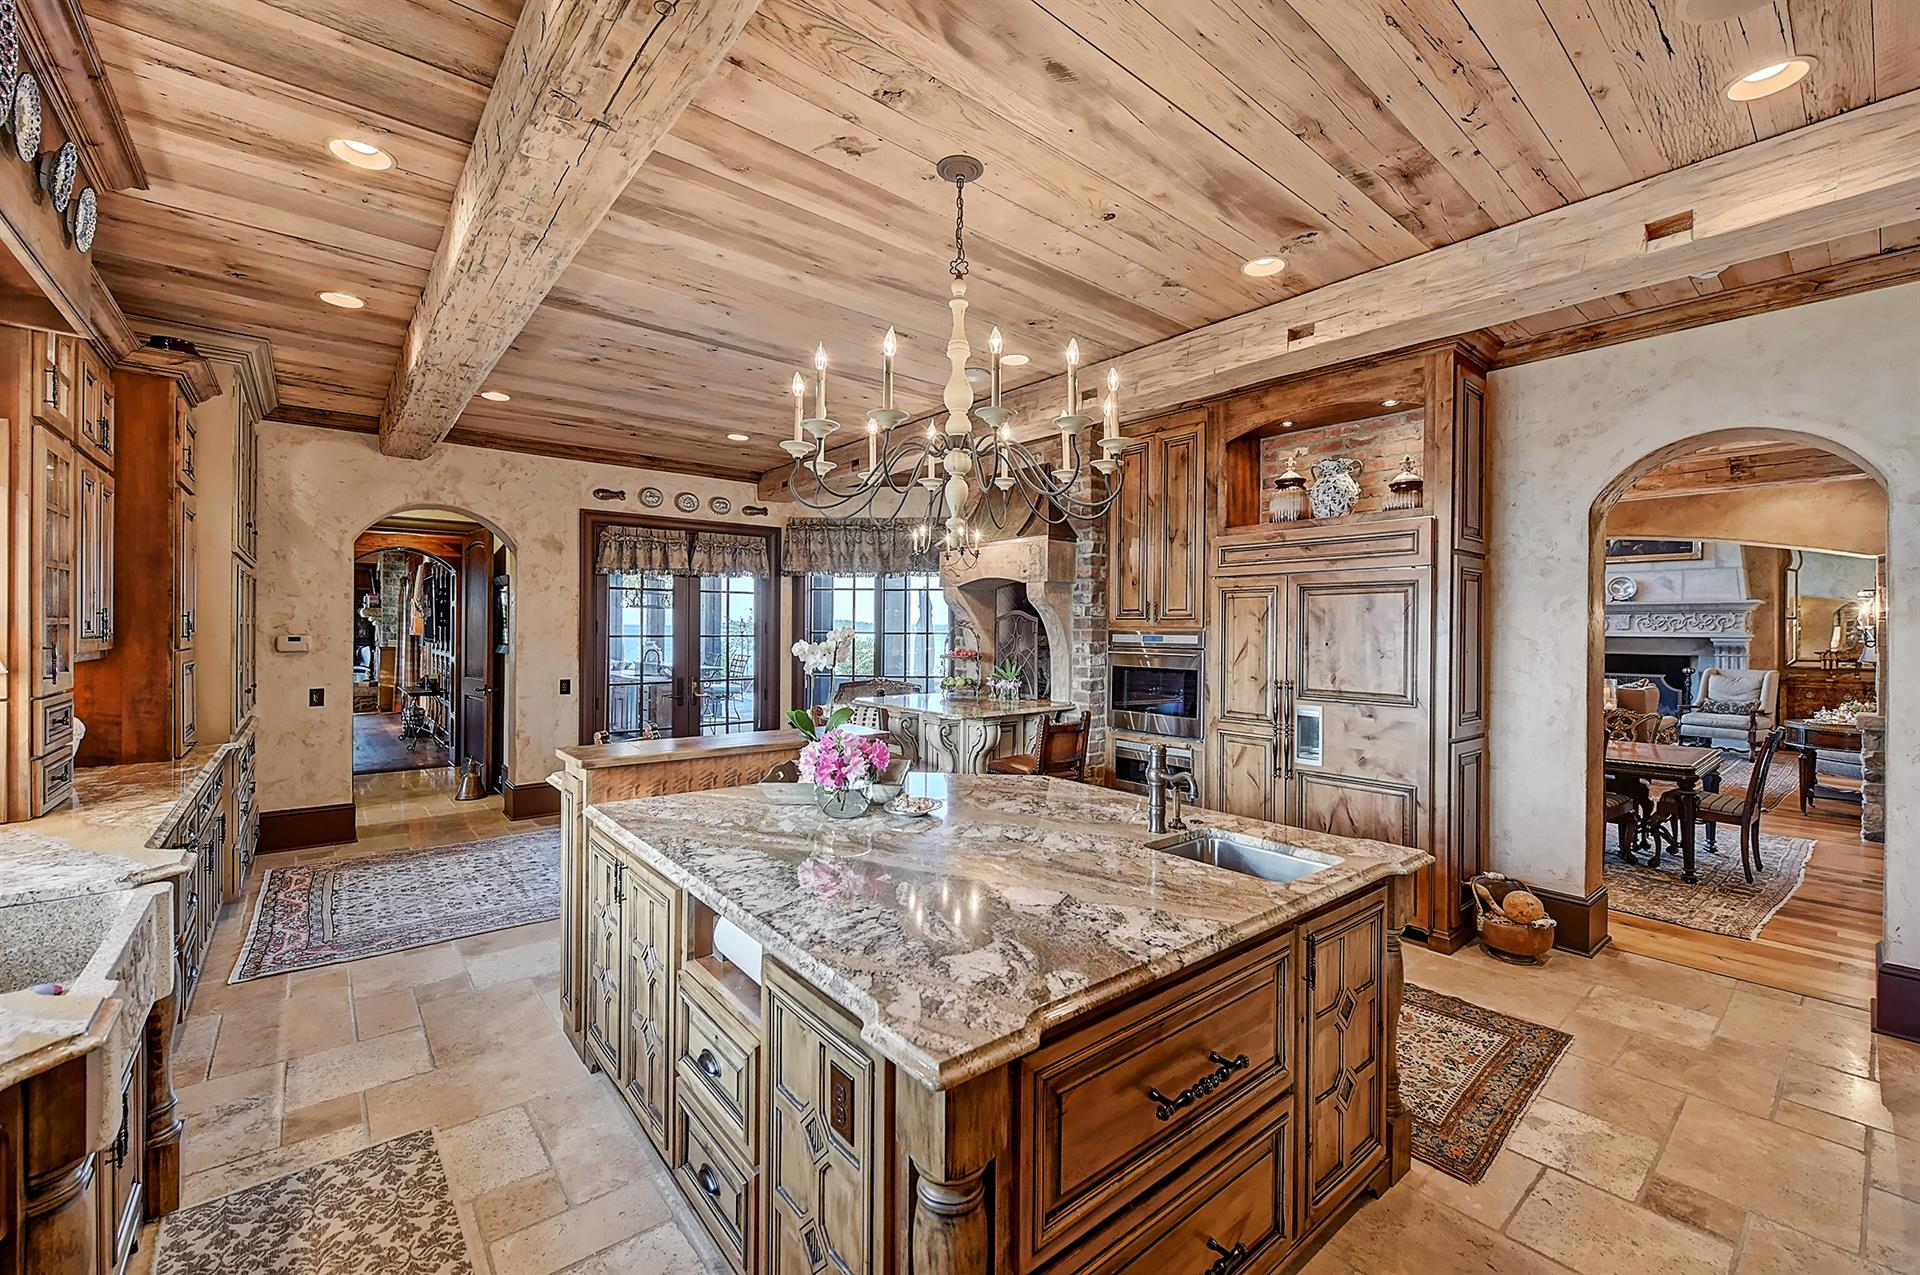 Lake Norman Waterfront Estate: a luxury Single Family Home ...